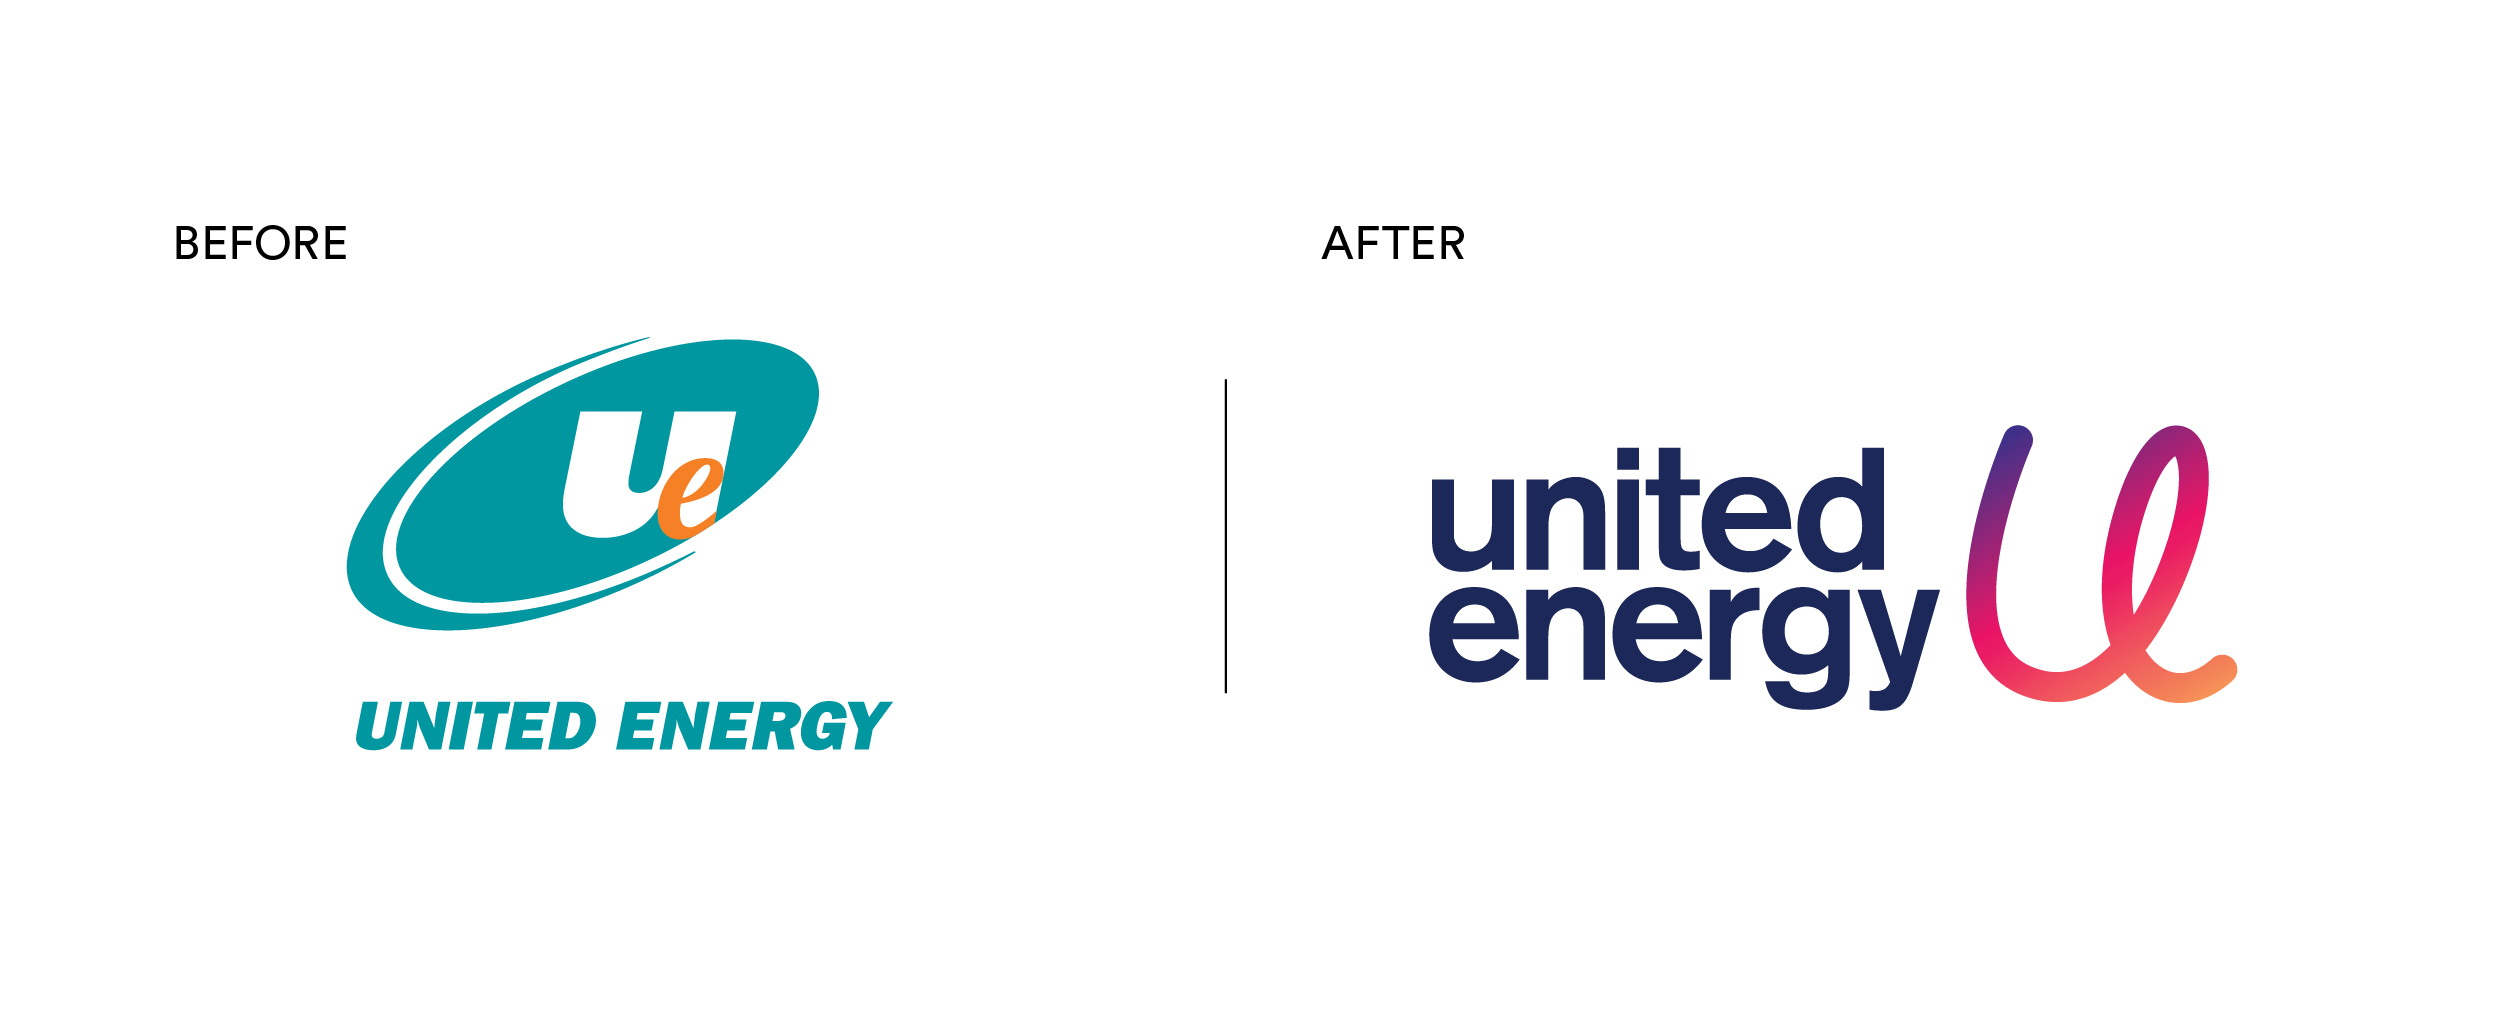 United Energy Brand Mark Before and After Brand Refresh